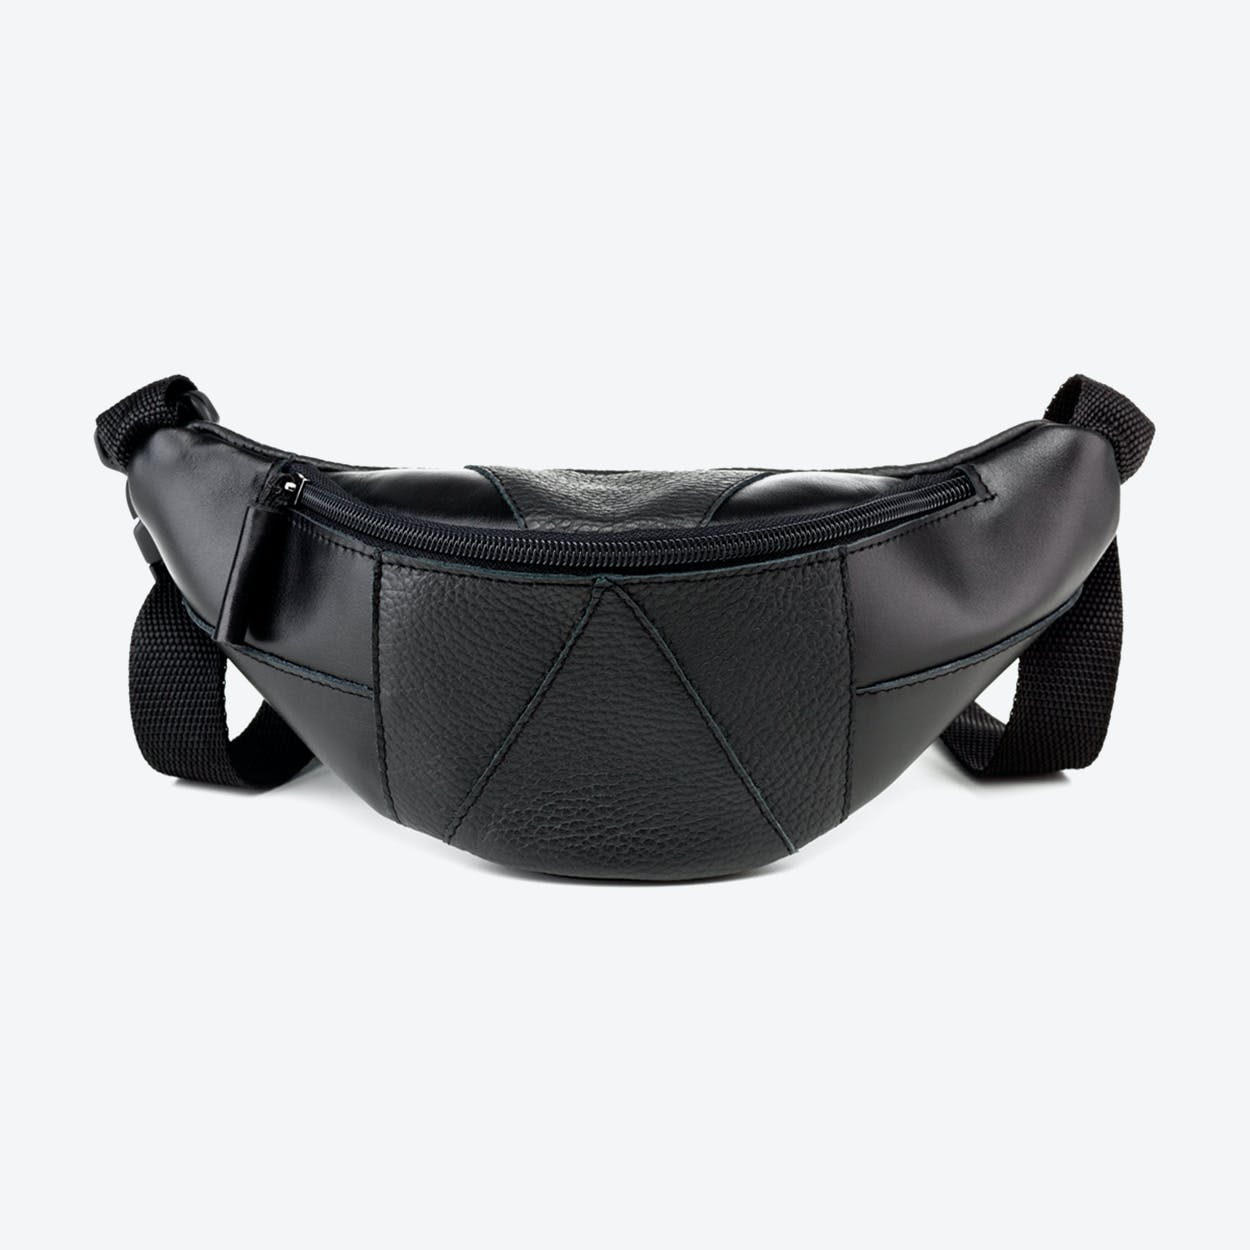 Banana Belt Bag Black